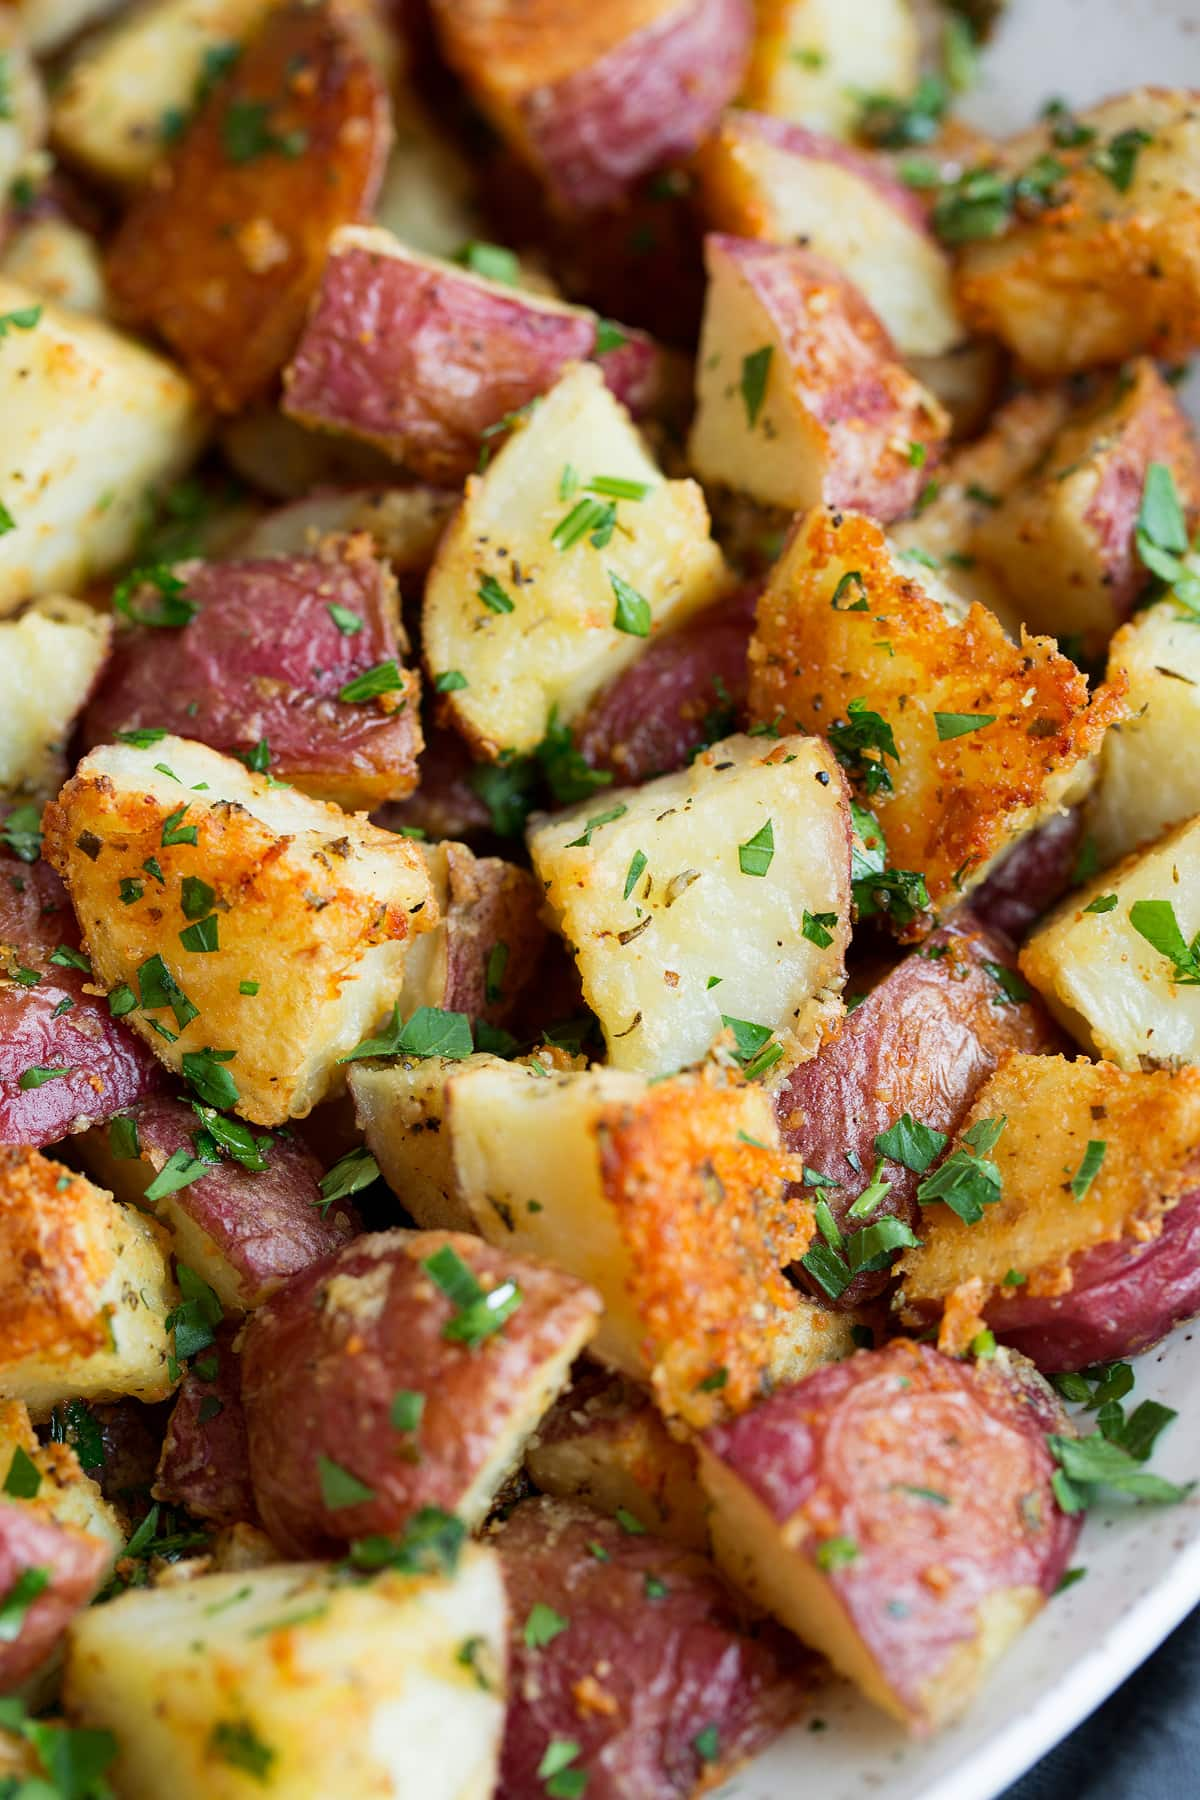 Close up image of roasted potatoes